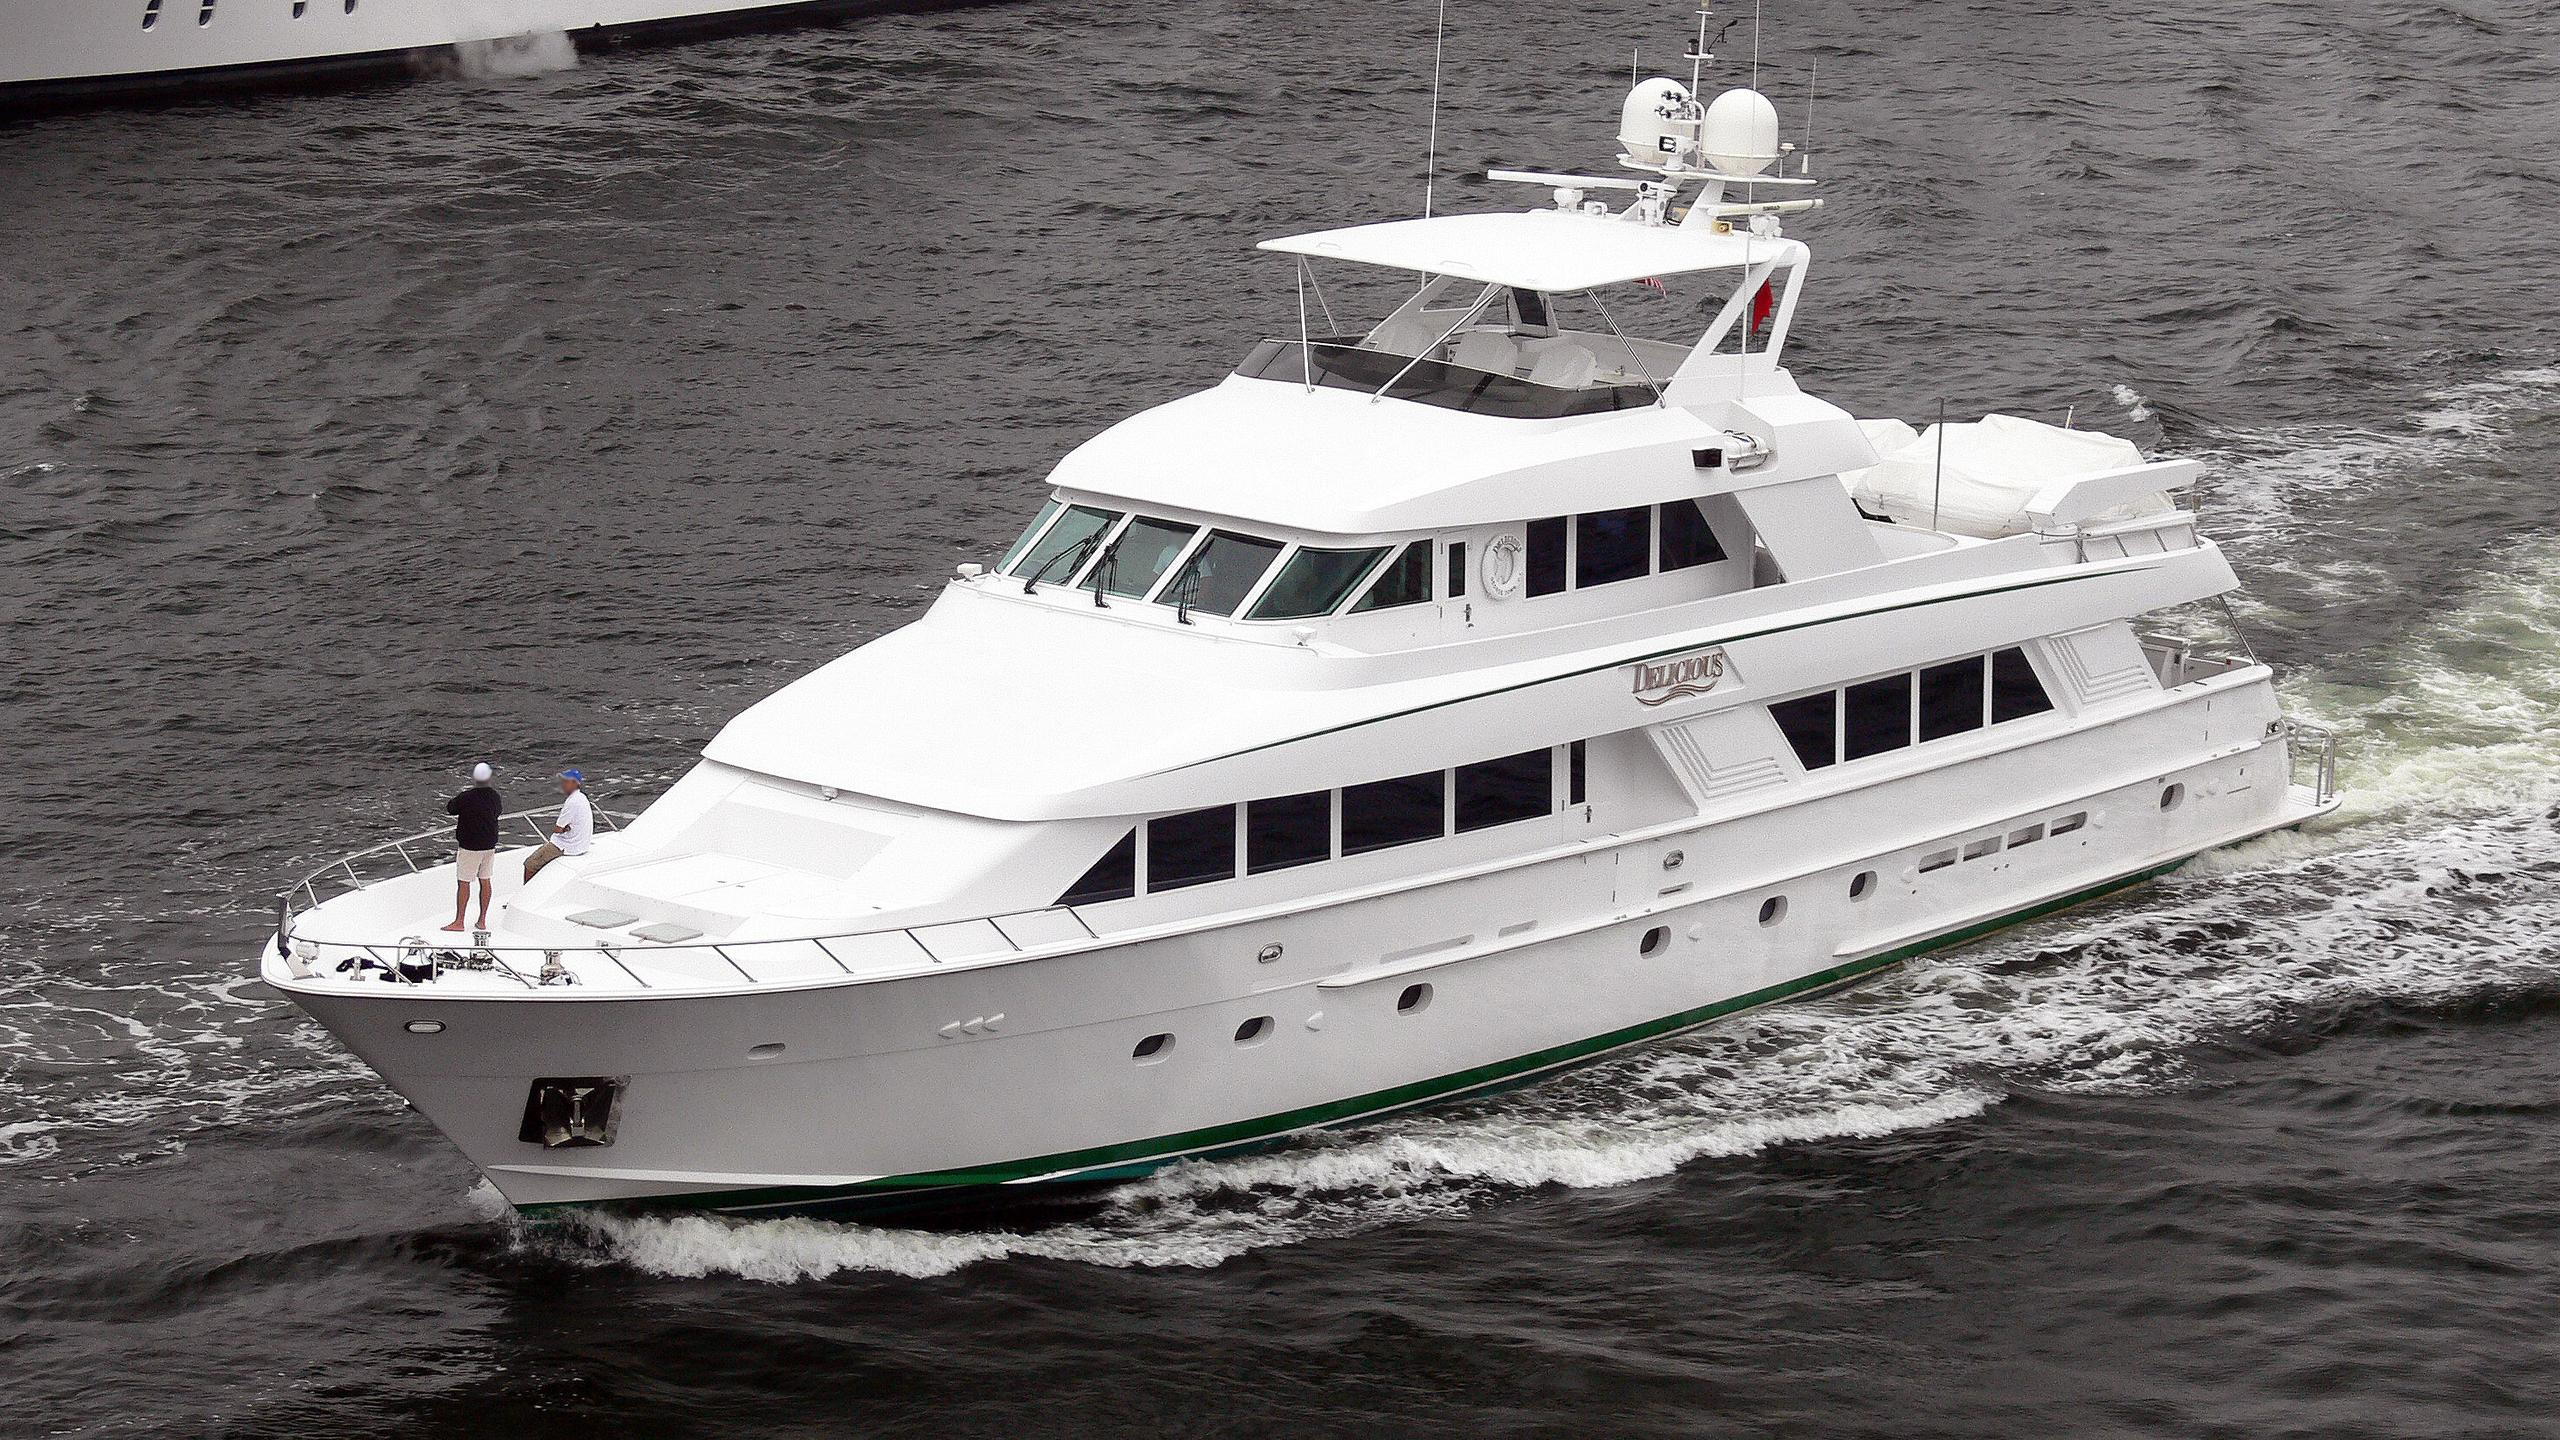 delicious-motor-yacht-hatteras-112-1994-36m-cruising